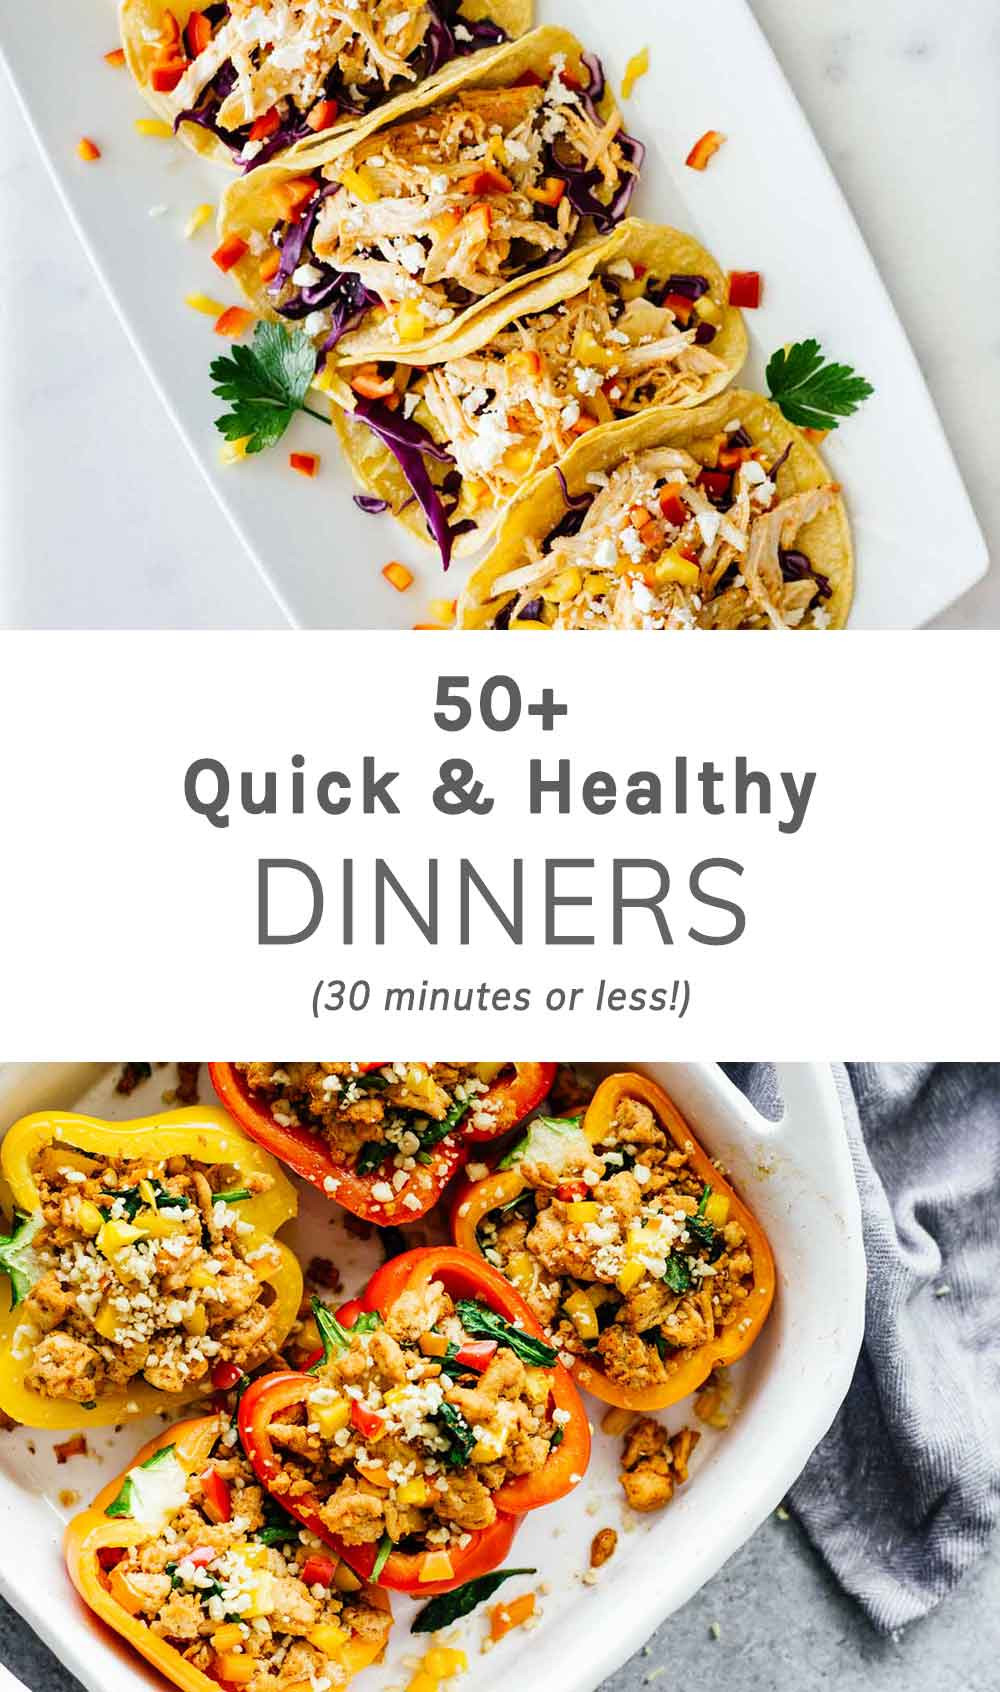 Healthy Quick Dinners  50 Quick Healthy Dinners 30 Minutes Less Jar Lemons